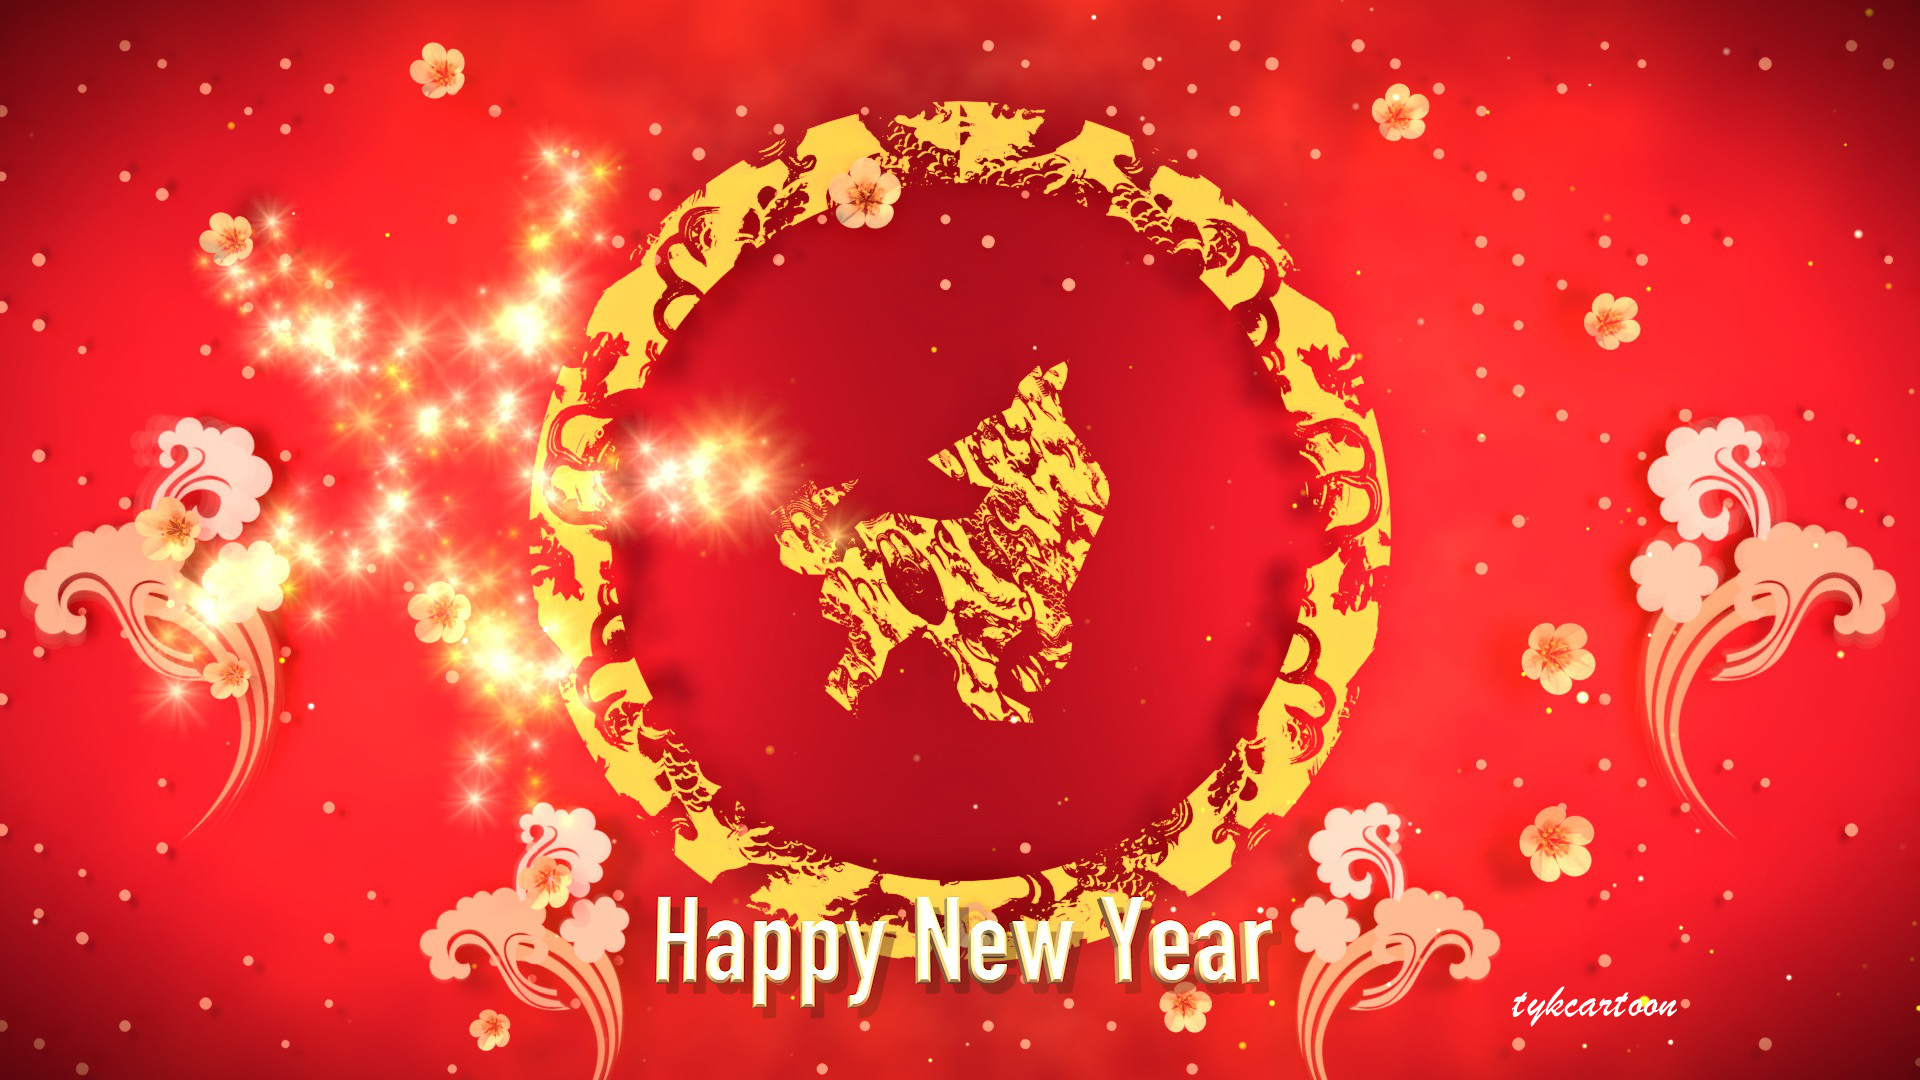 Artstation 2018 cny animated greeting card tzu yu kao 2018 year of dog animation project preview kristyandbryce Gallery